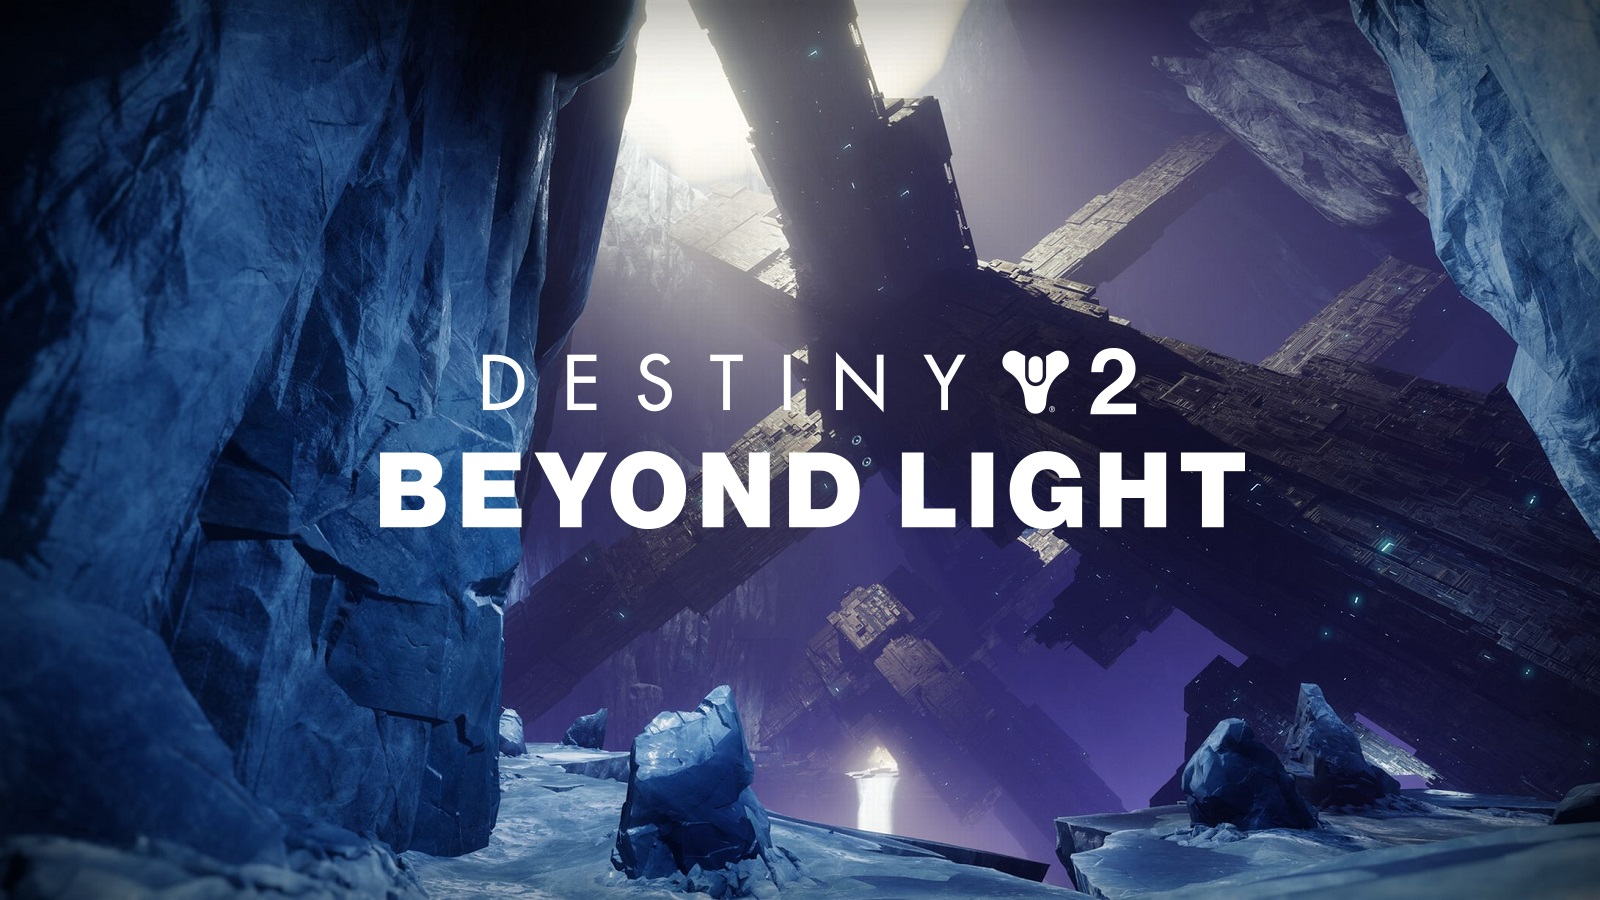 Destiny 2 Europa Vex With Beyond Light Text